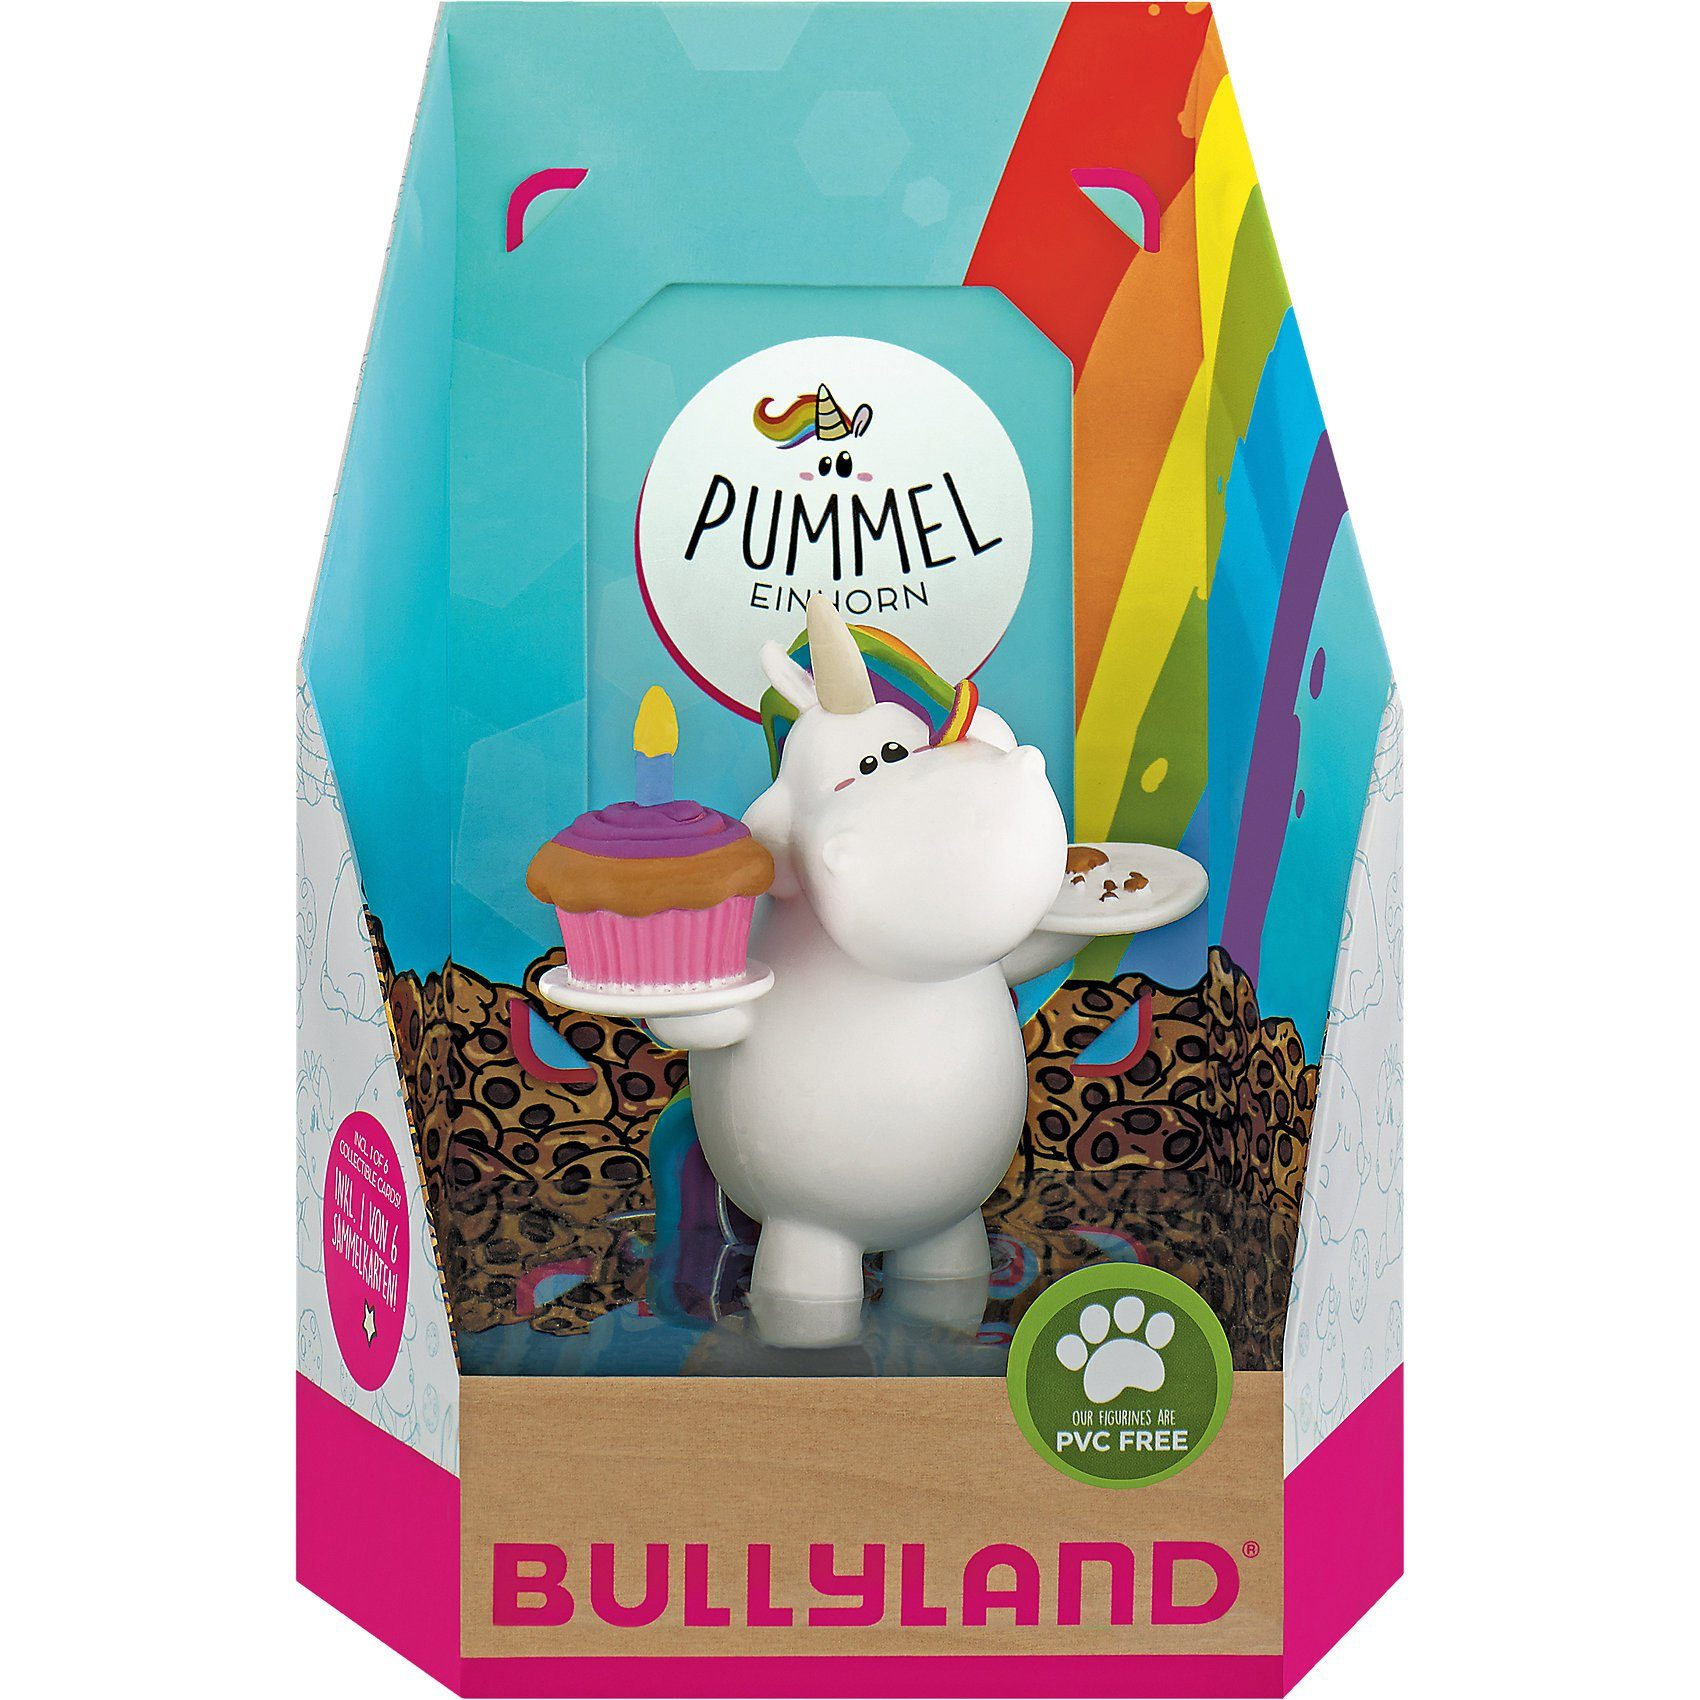 BULLYLAND Geburtstags-Pummel Single Pack mit Sammelkarte